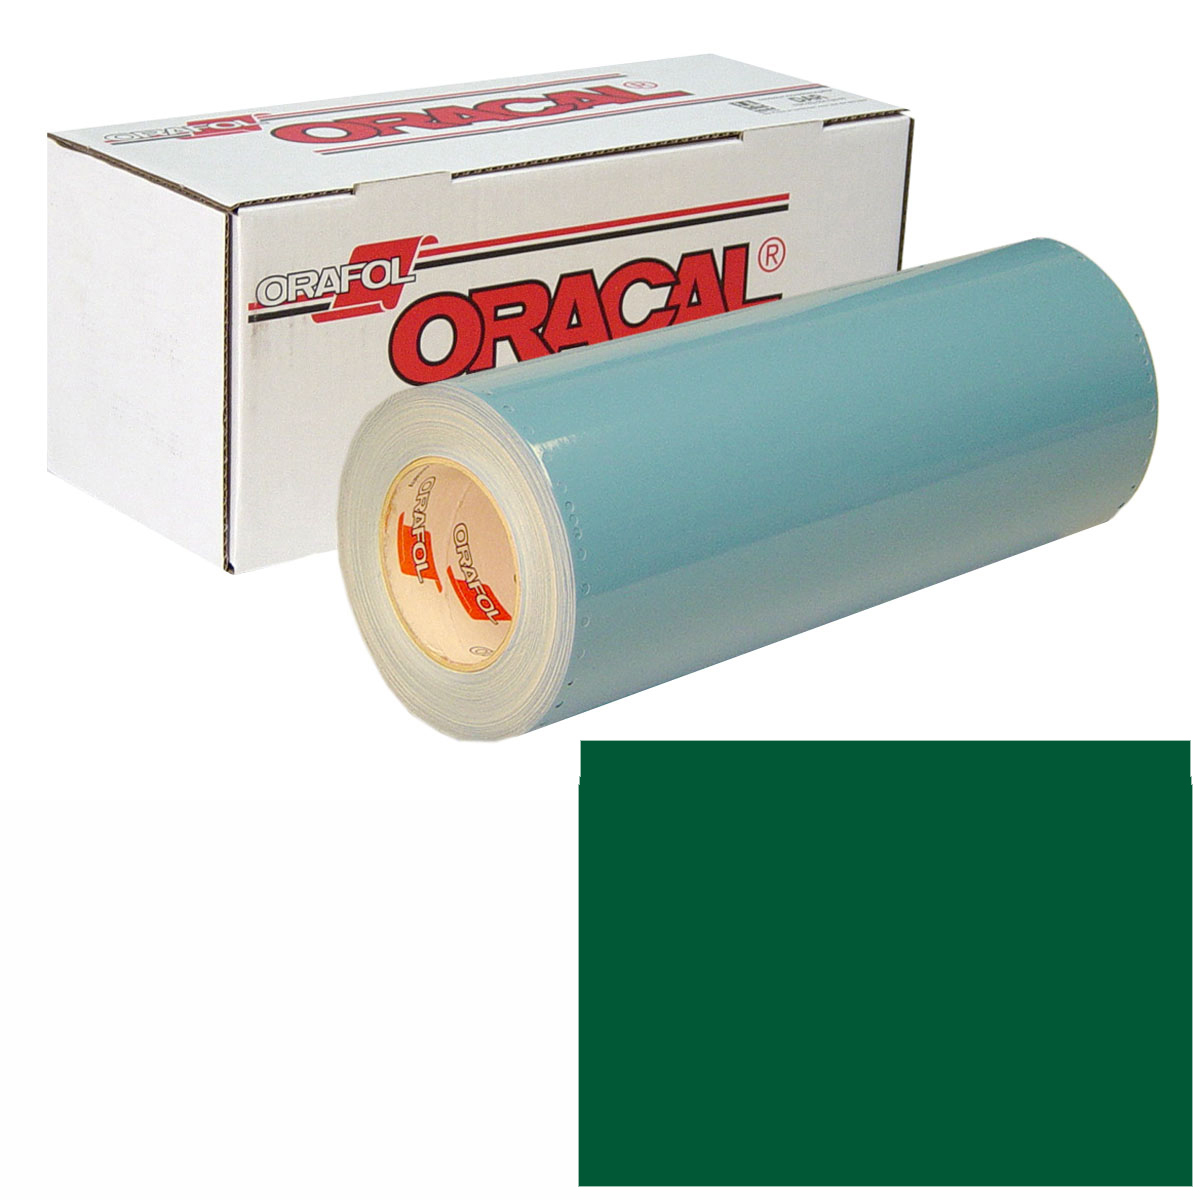 ORACAL 751 15In X 50Yd 060 Dark Green